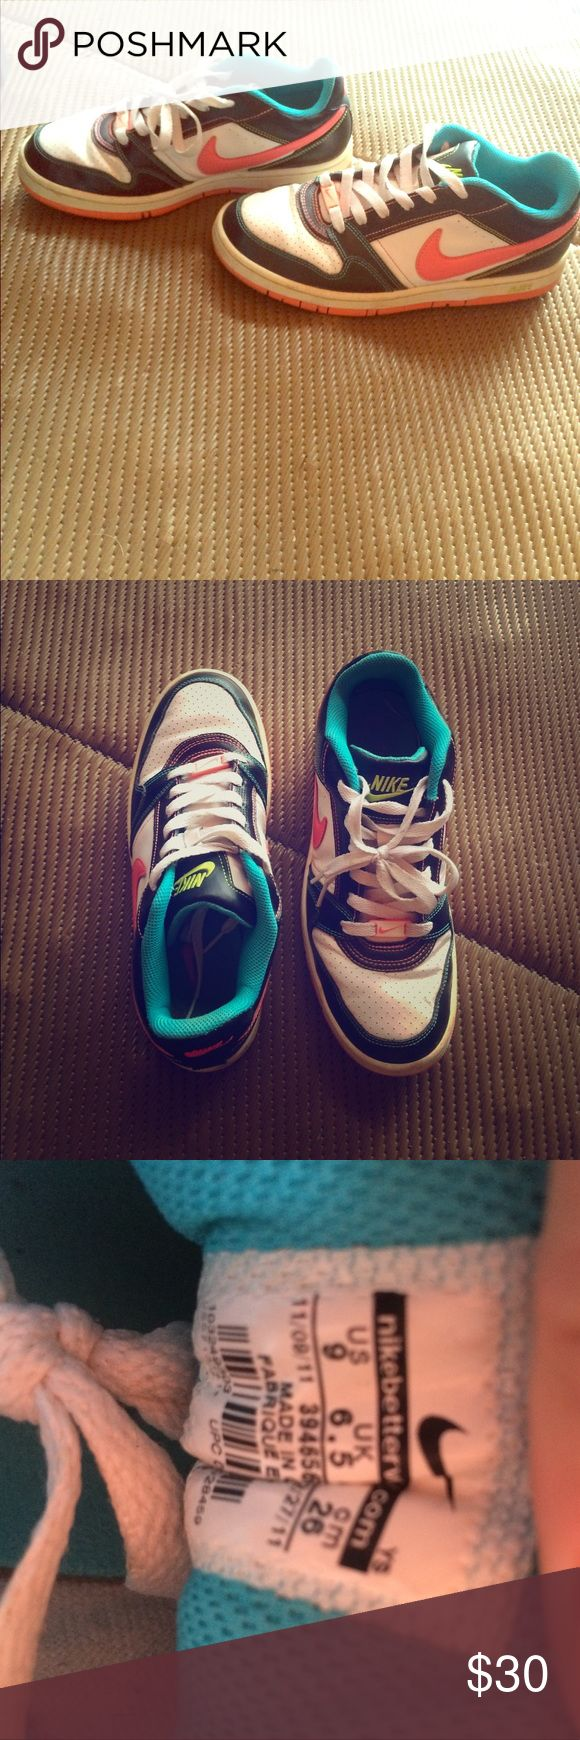 Nike Air Max Women's Nike Air Max good condition Nike Shoes Sneakers